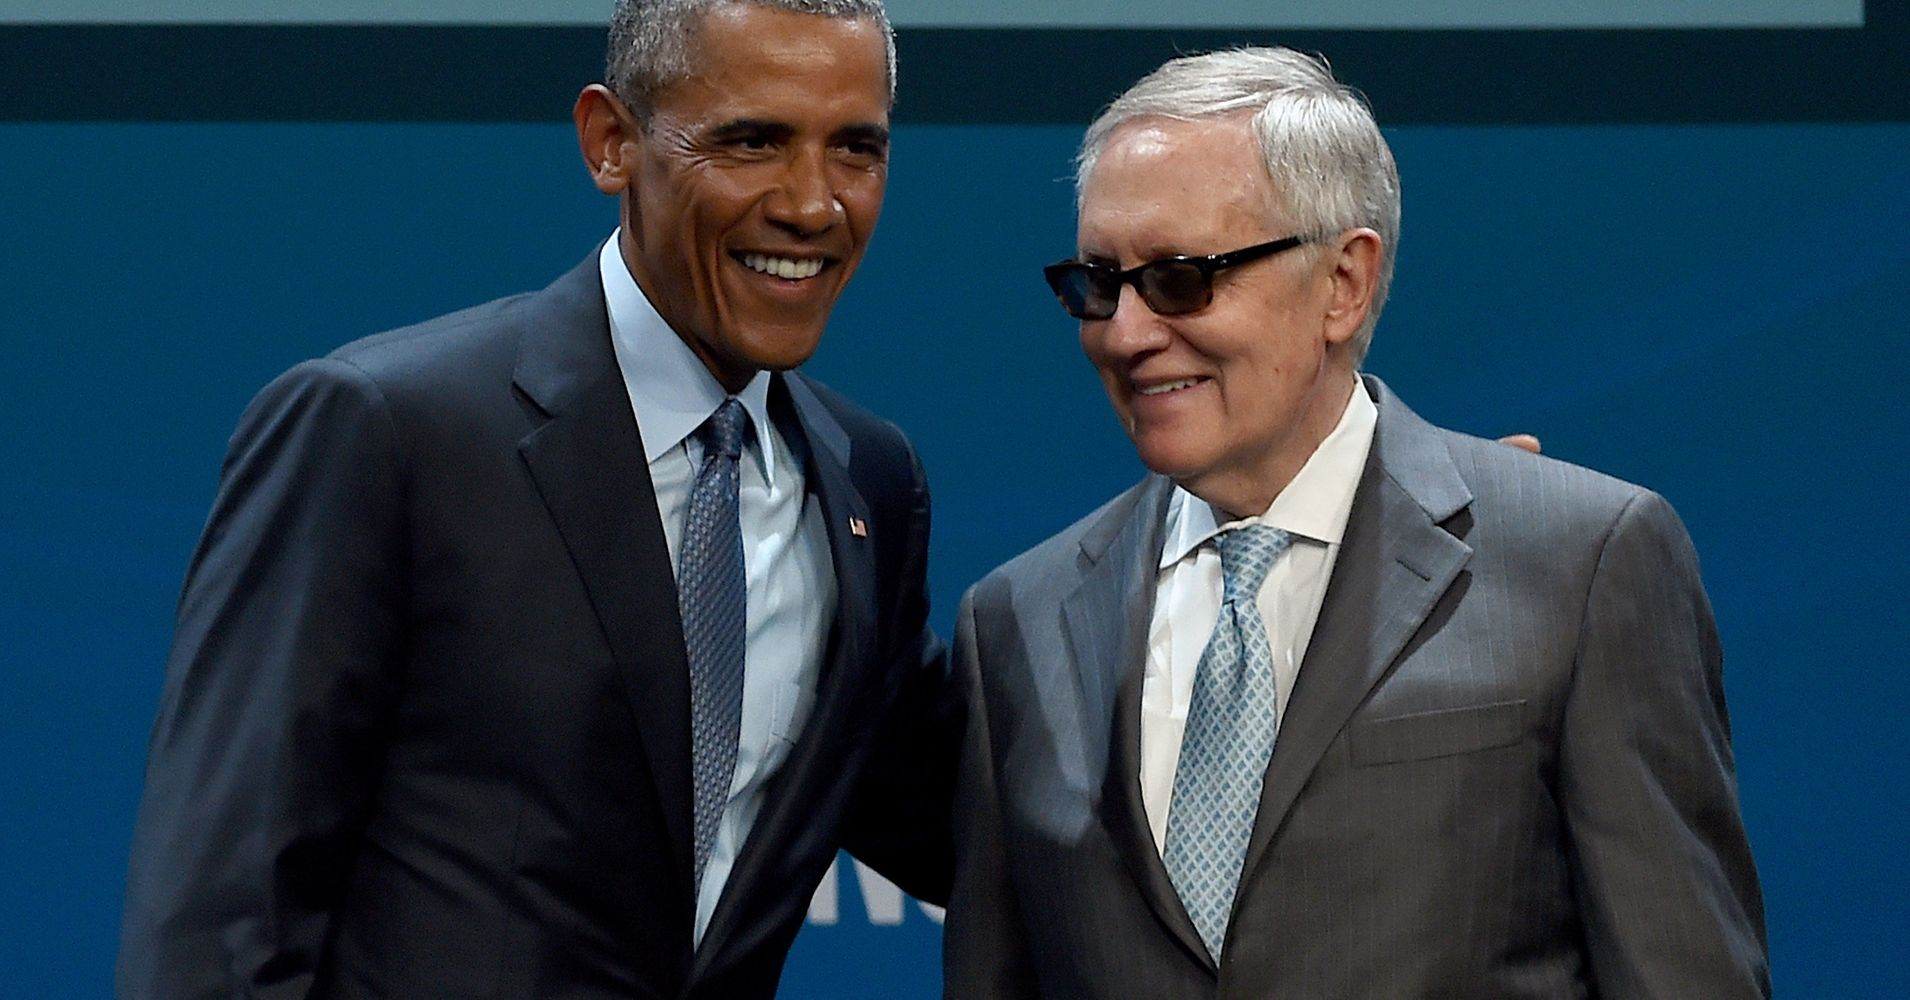 Charles David Koch We Know Who You Are >> Charles Koch: Obama Attack Was A 'Farewell Gesture To Help Harry Reid' | HuffPost